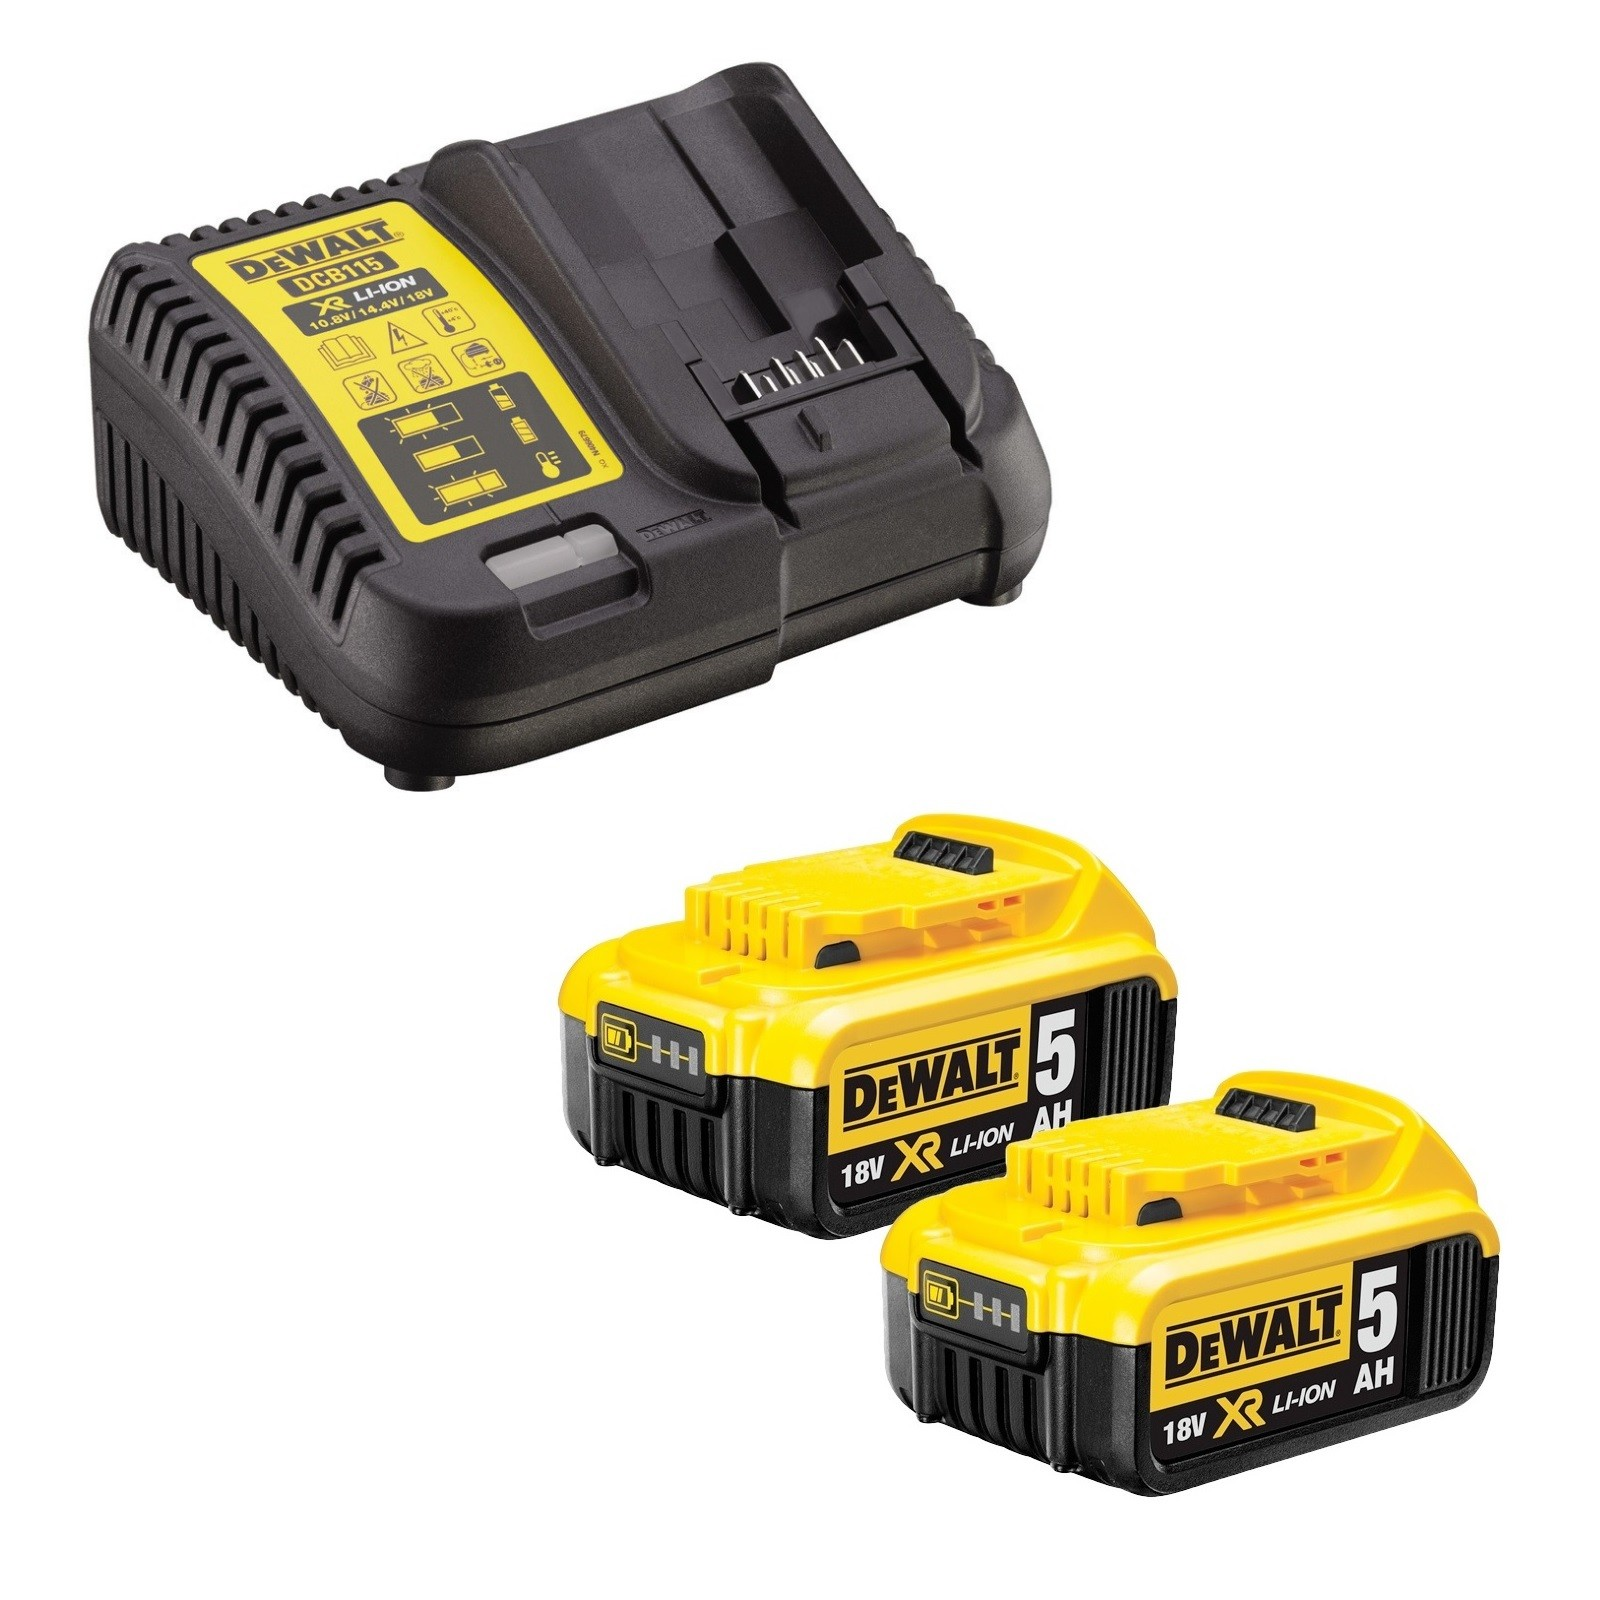 DeWalt DCB184X2/DCB115 2x 5.0Ah XR 18v Li-Ion Batteries and Charger Starter Kit